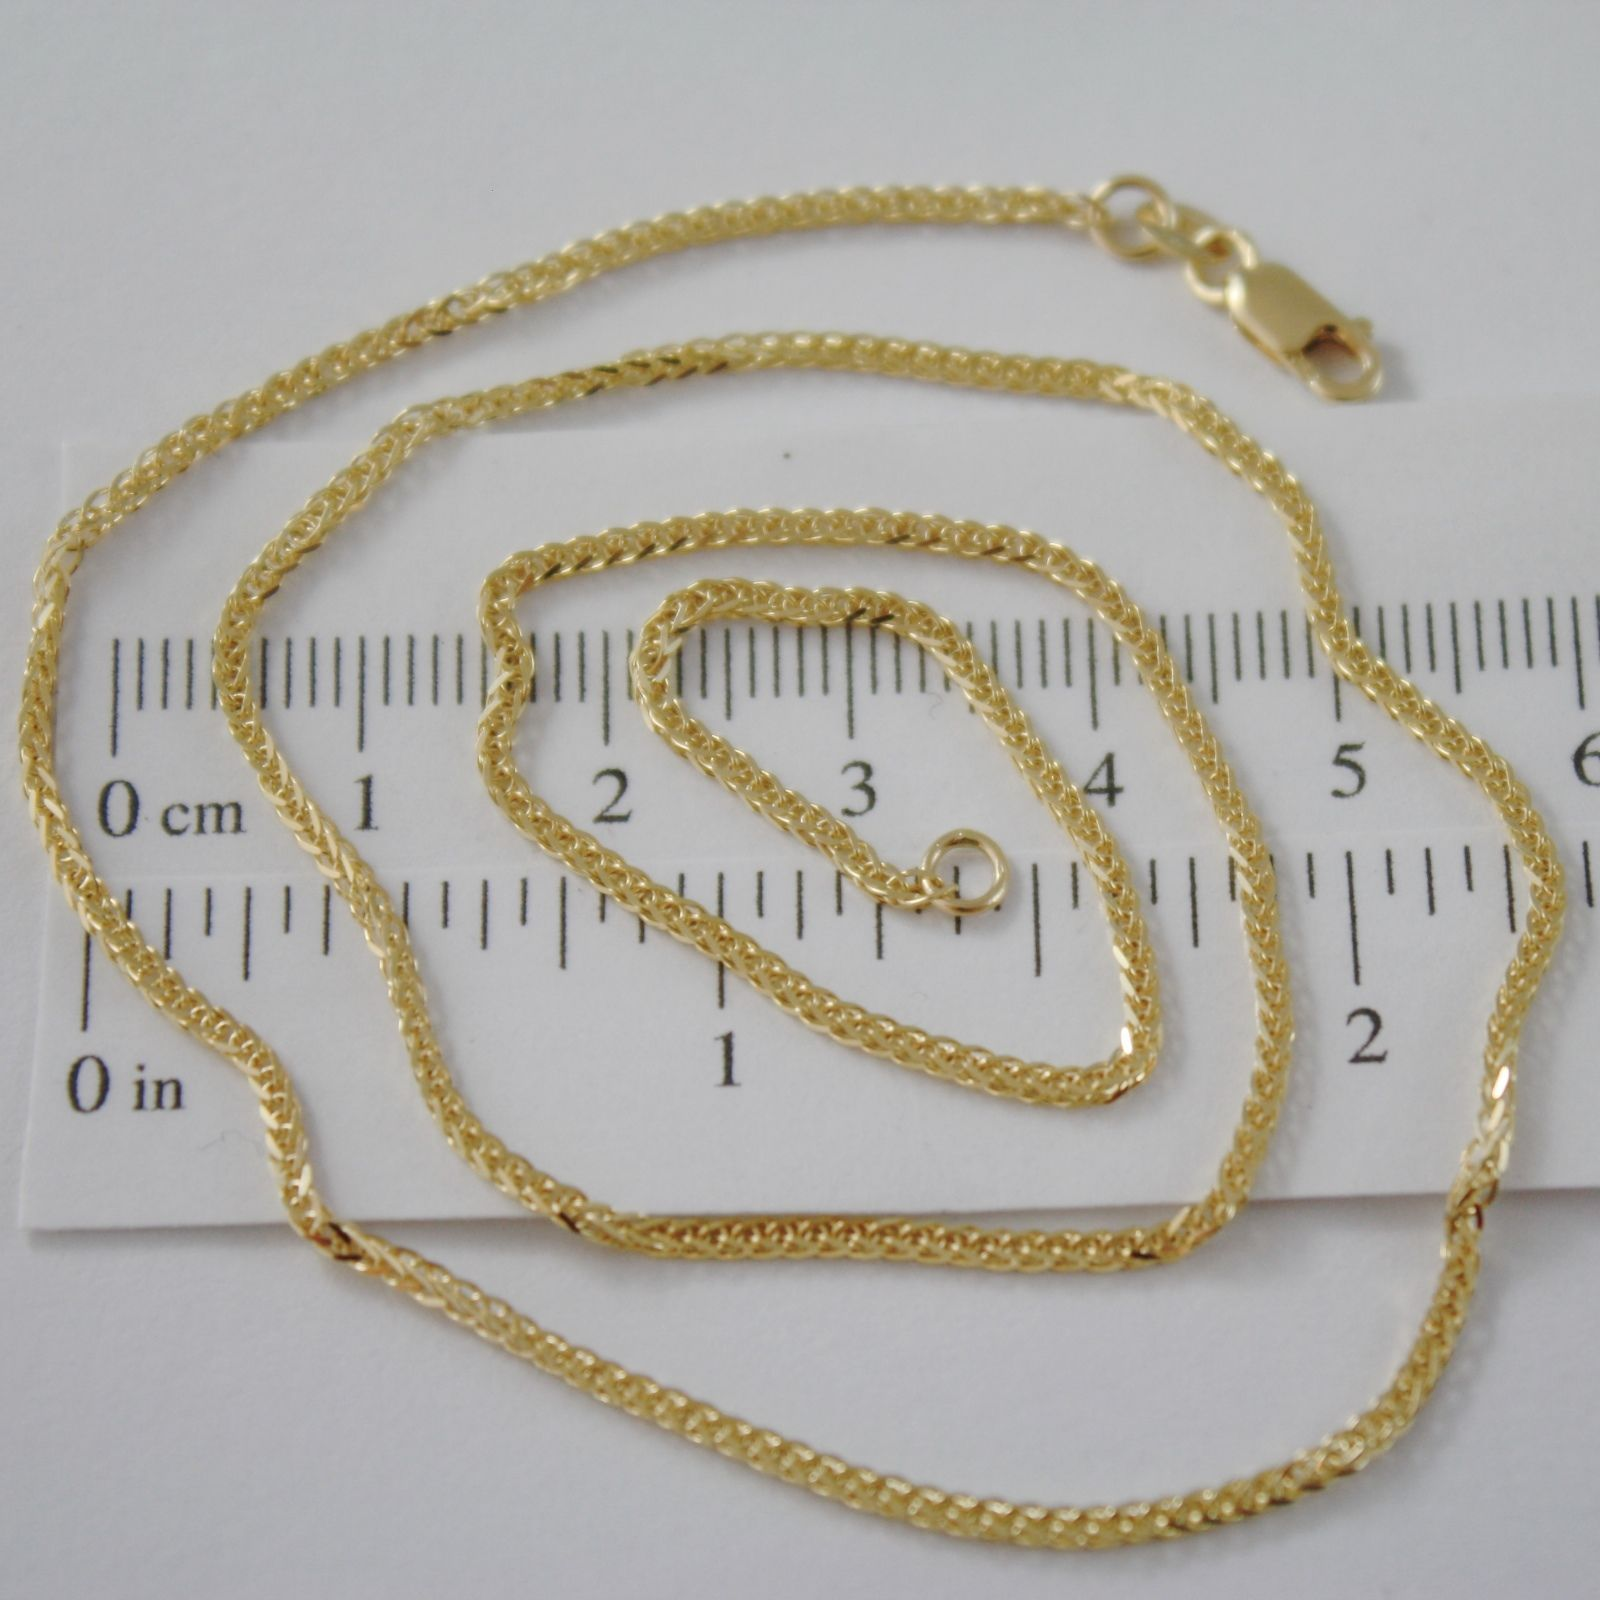 SOLID 18K YELLOW GOLD CHAIN NECKLACE 2MM EAR SQUARE MESH 19.69 IN, MADE IN ITALY